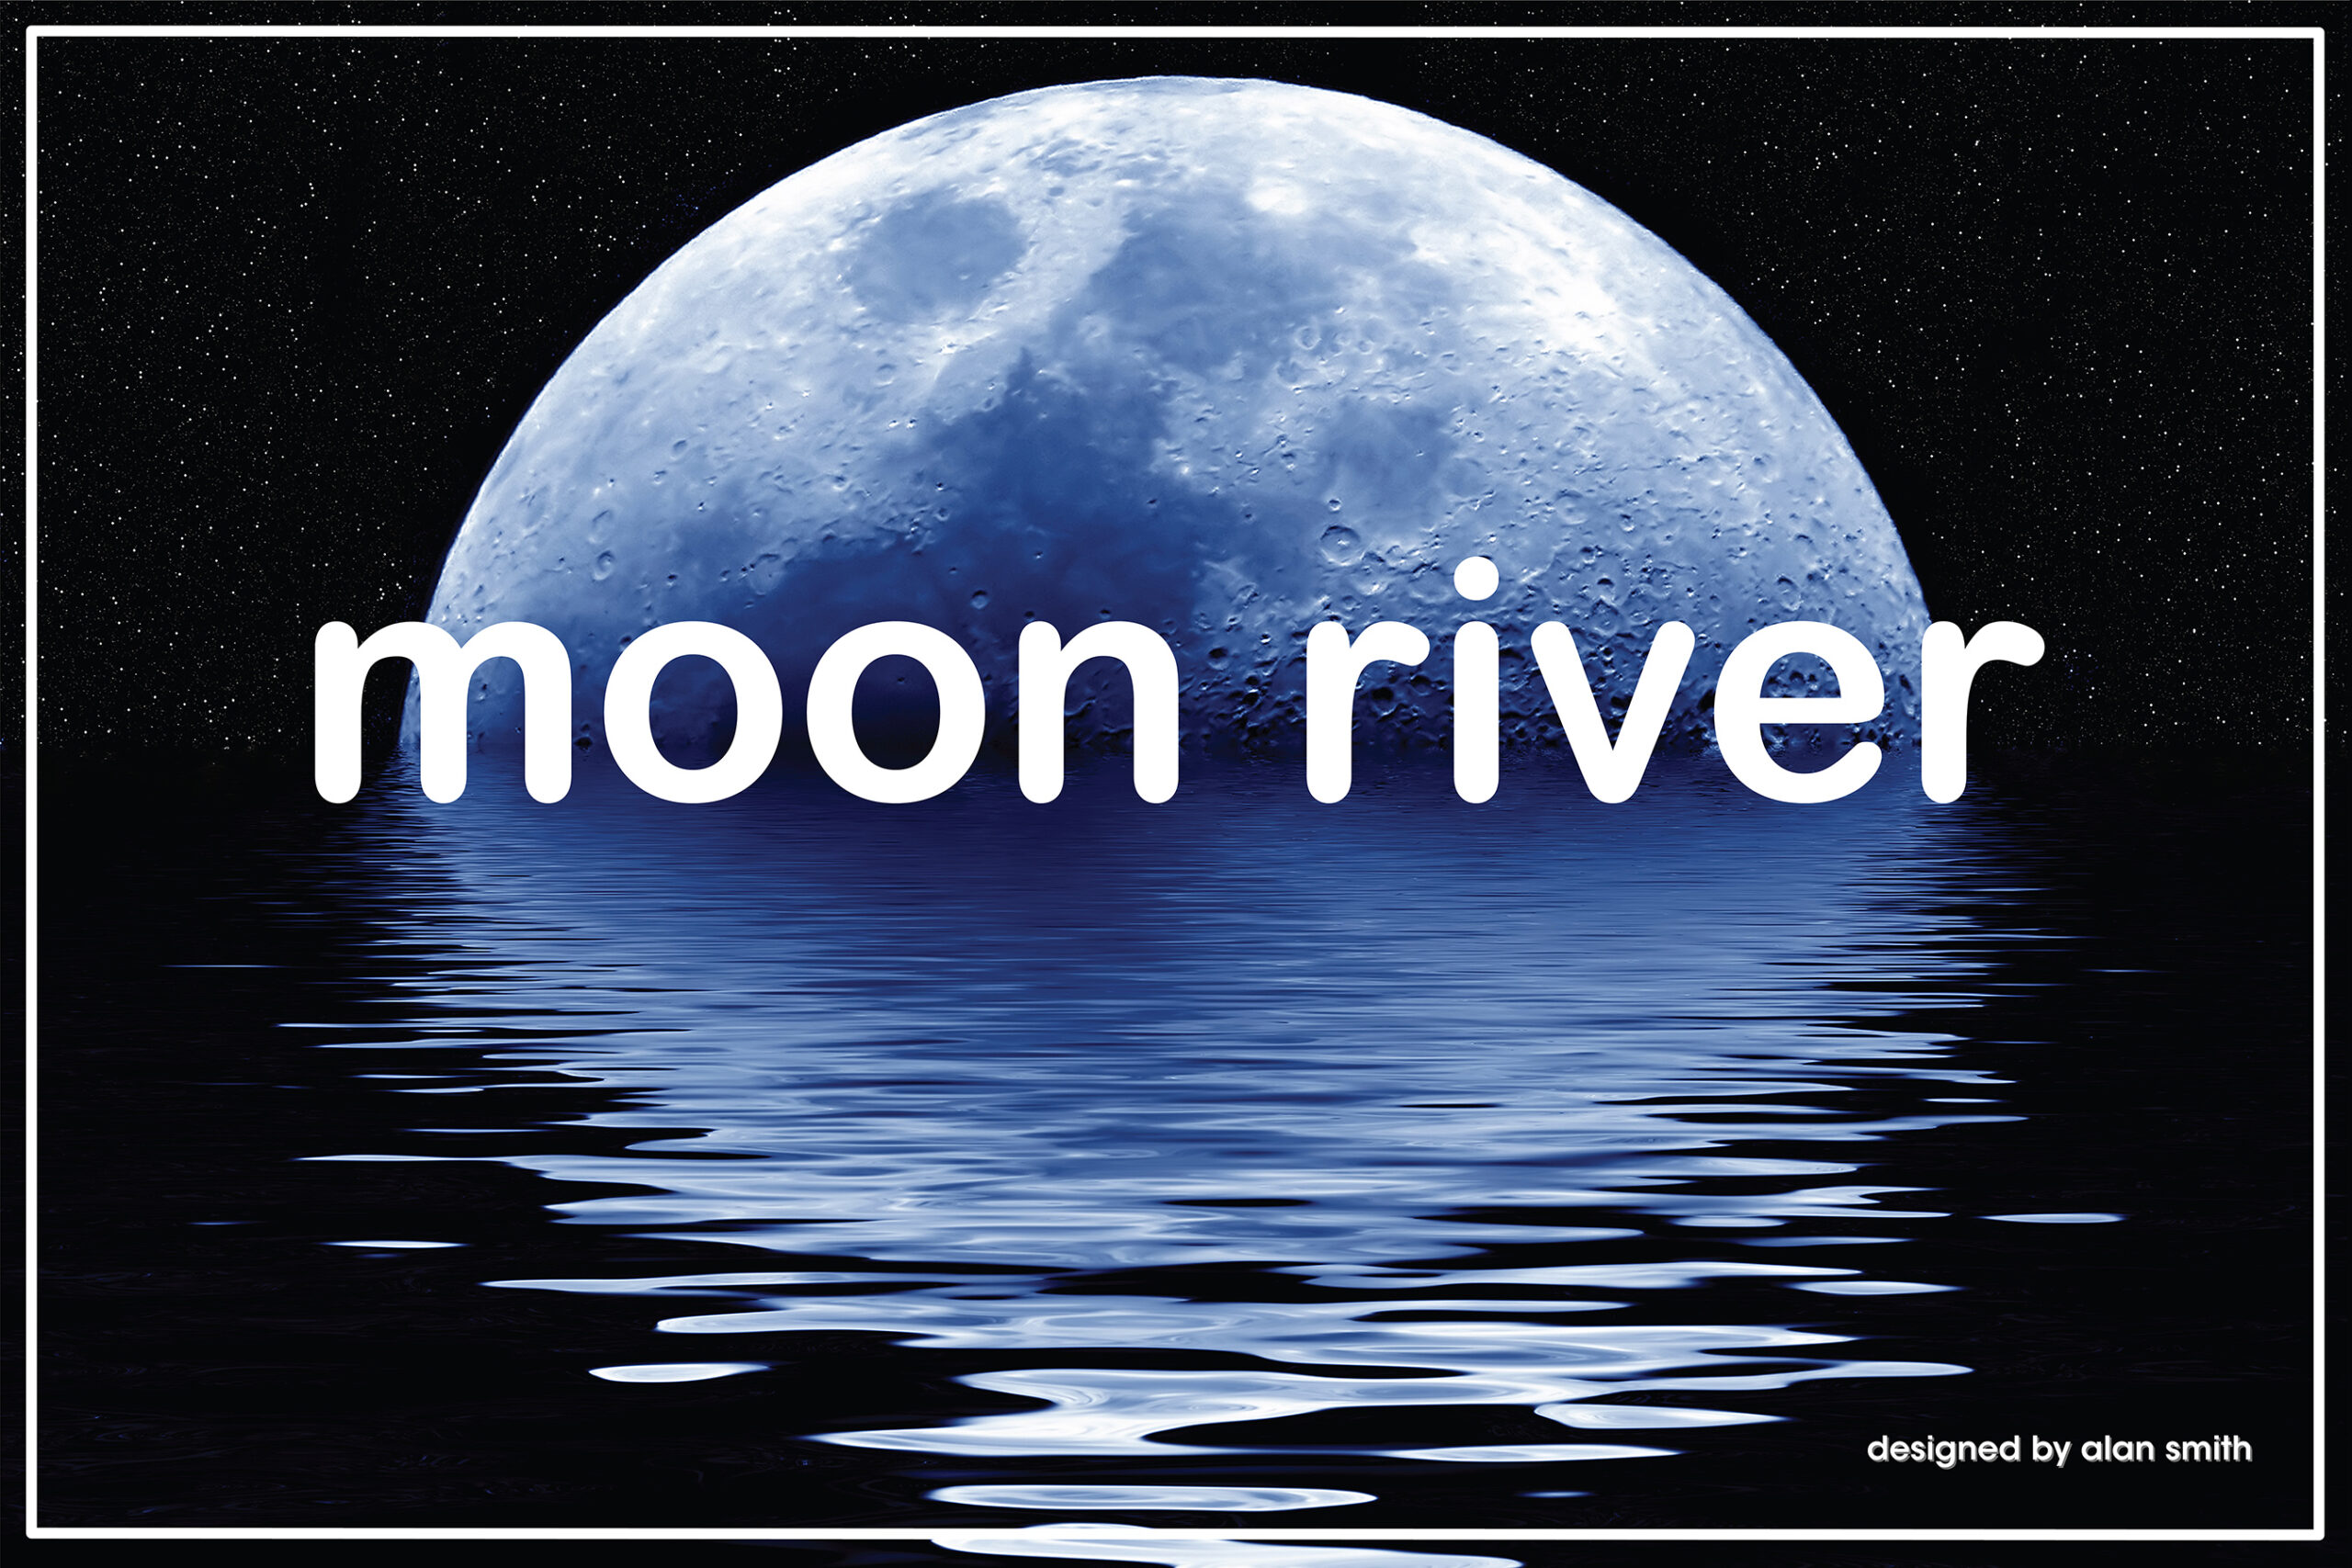 Moon River Designed by Alan Smith